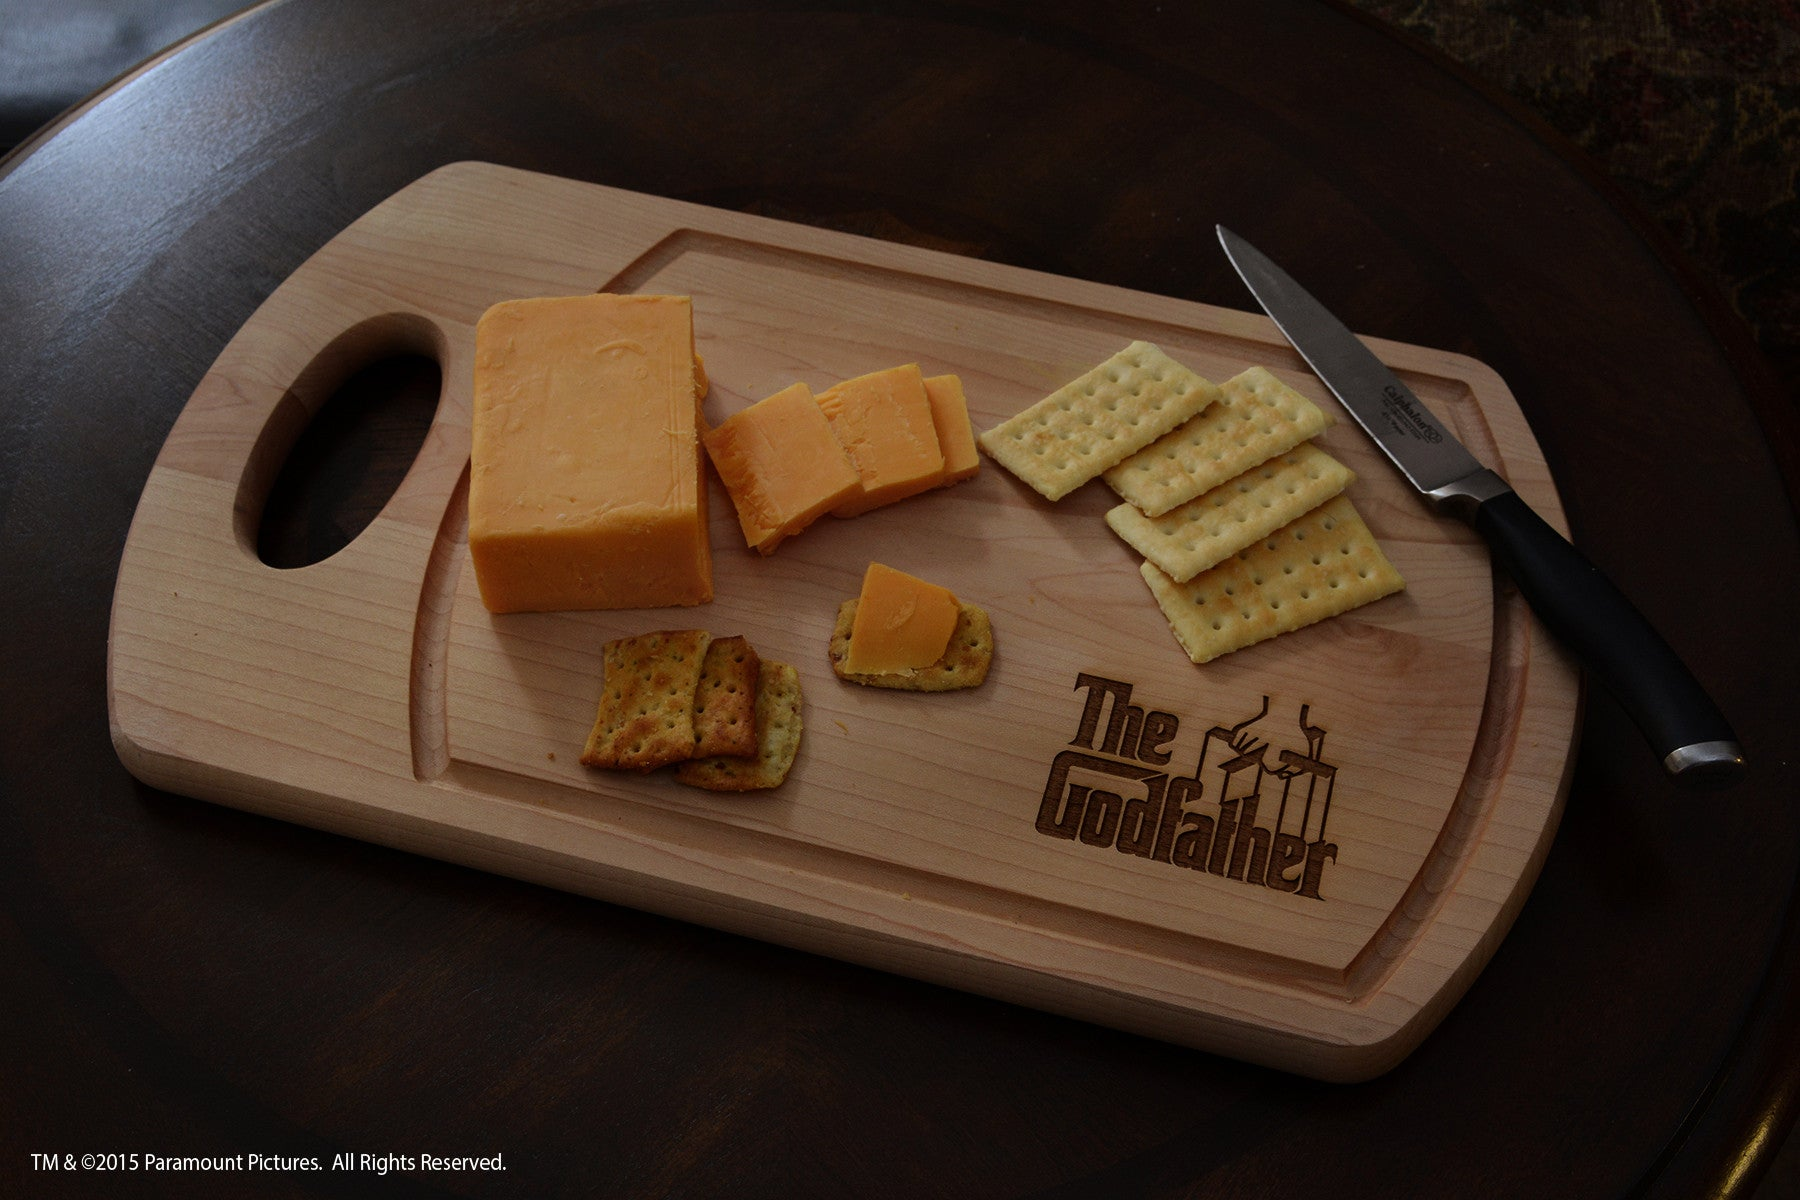 The godfather cutting board cheese server for movie lovers